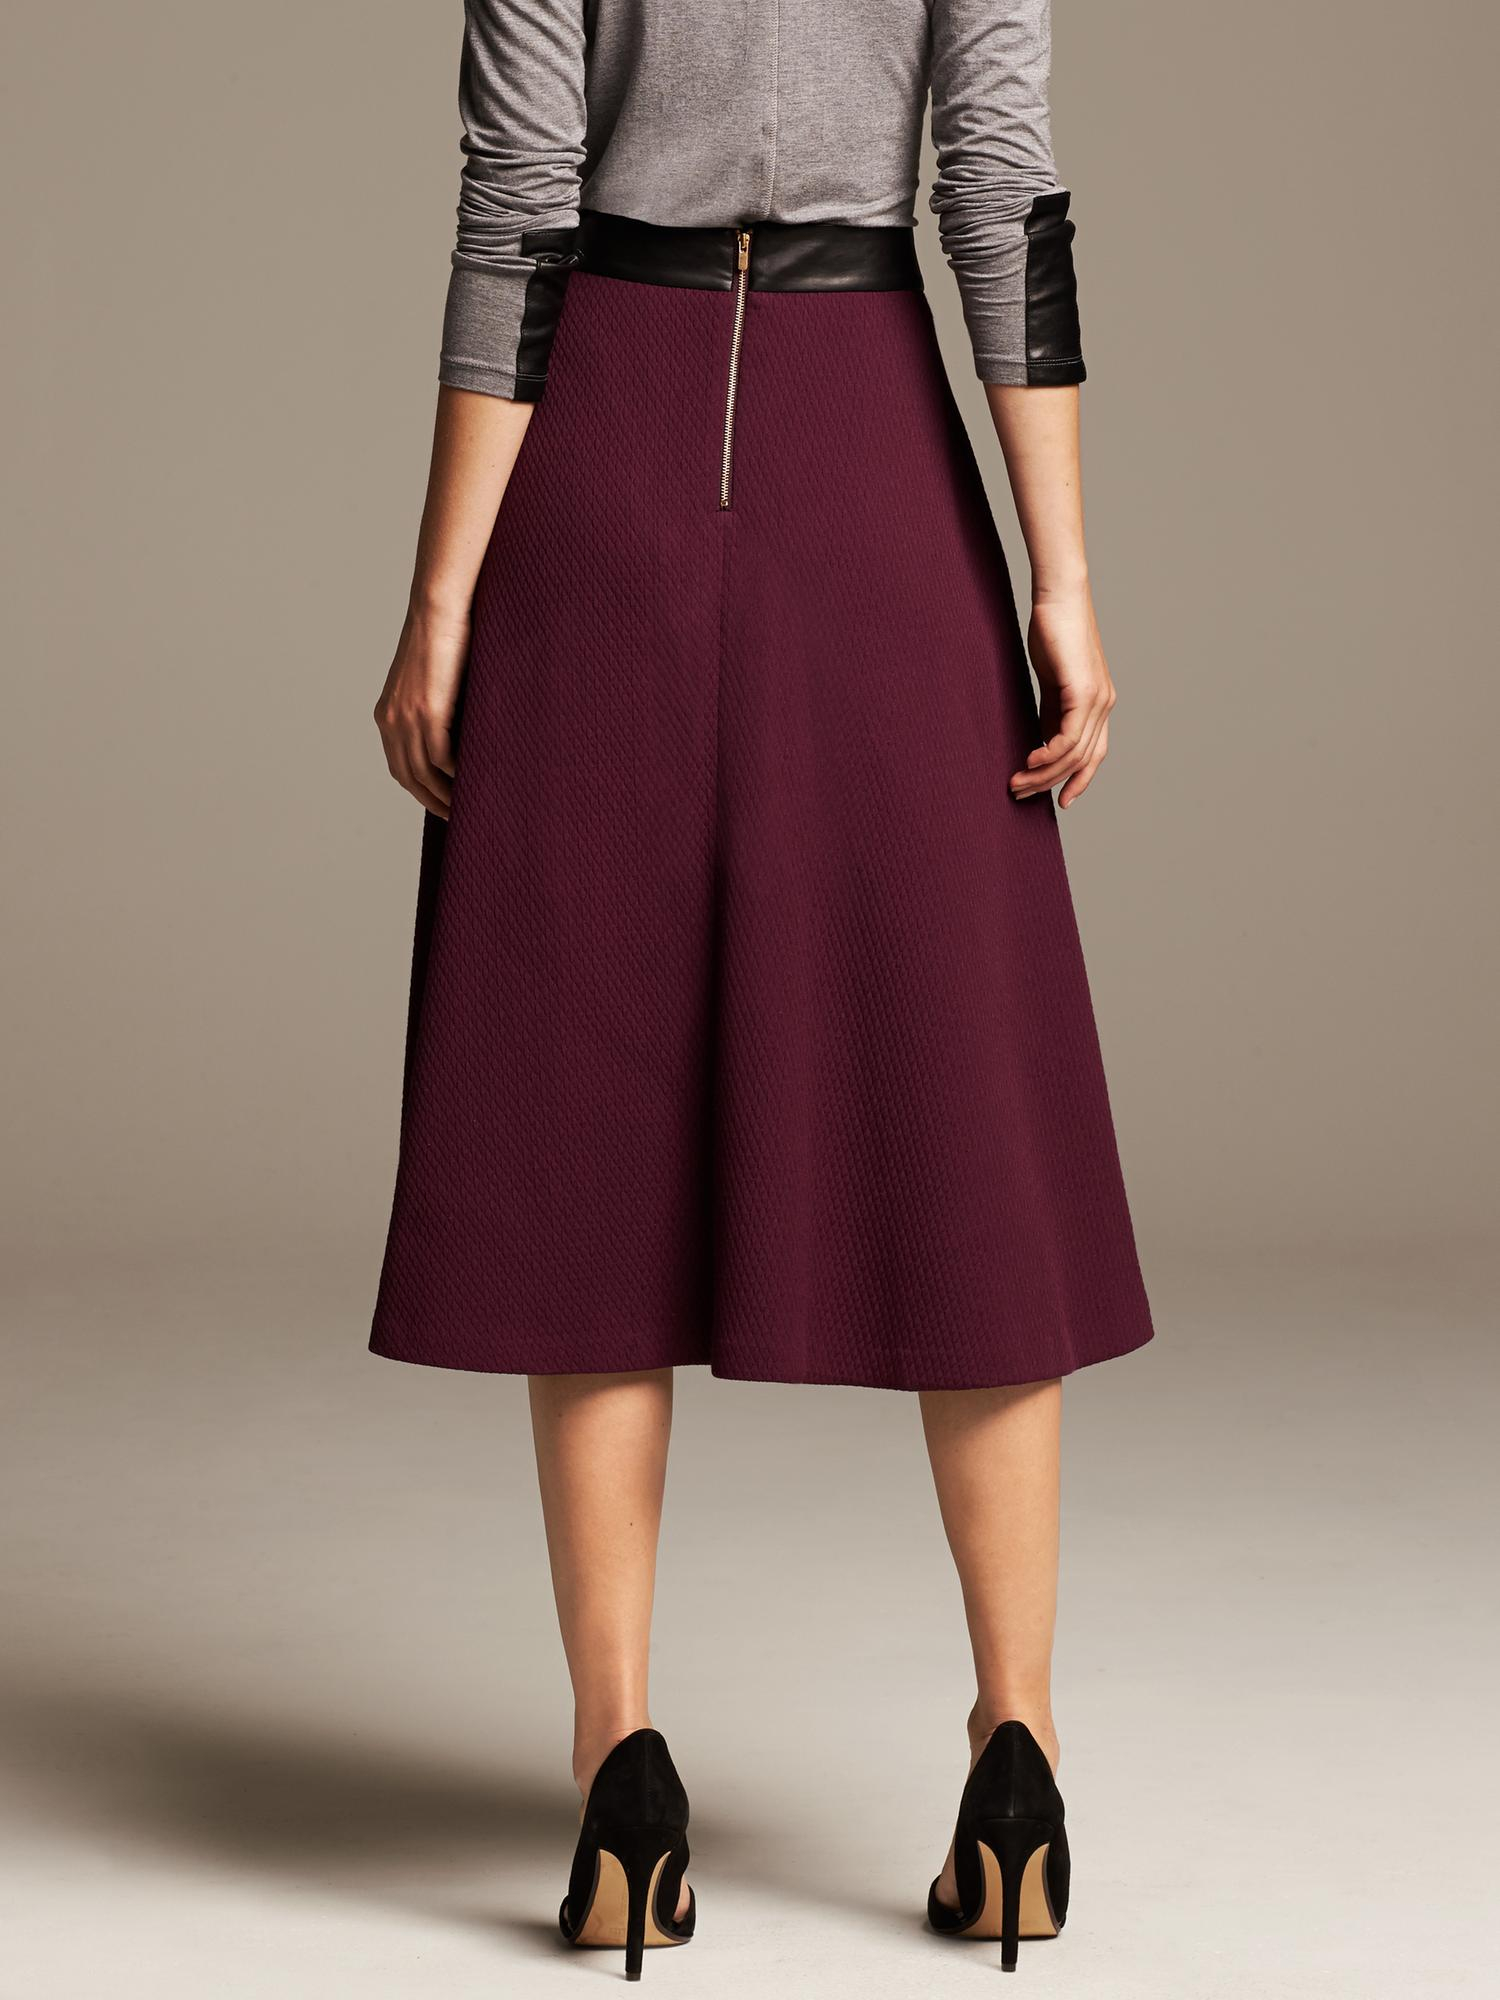 Banana republic Burgundy Jacquard Midi Skirt in Purple | Lyst